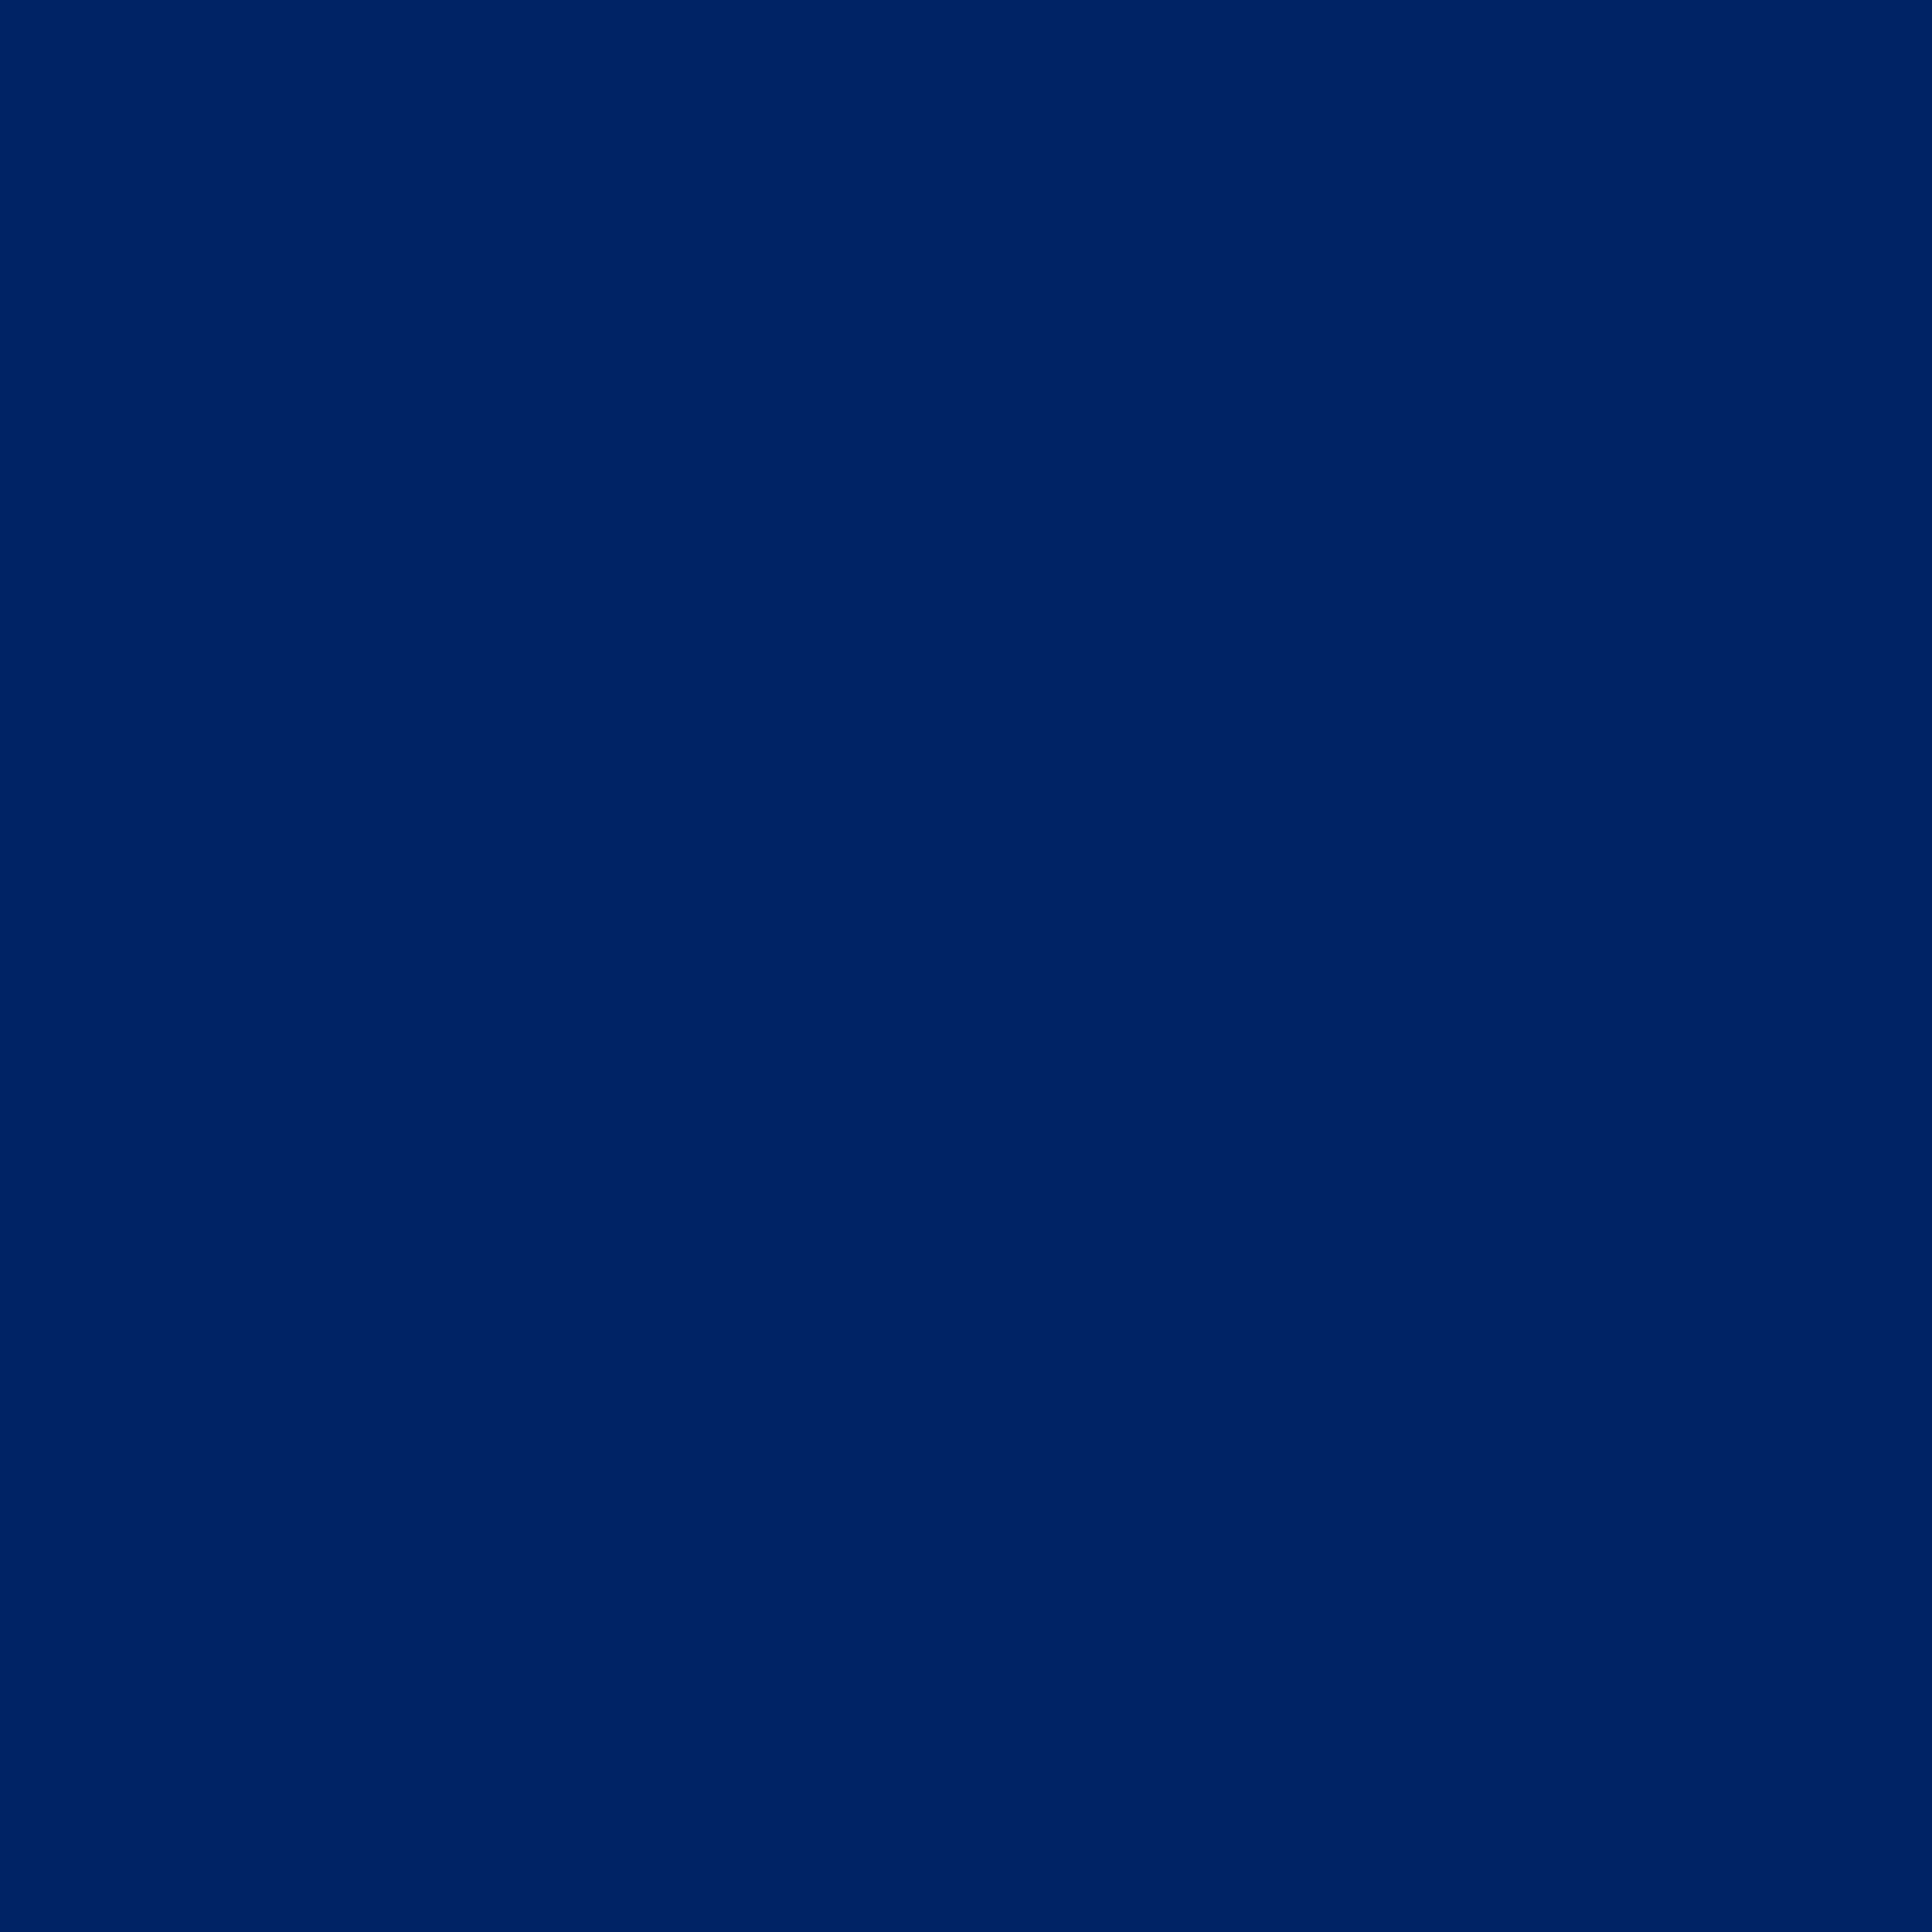 3600x3600 Royal Blue Traditional Solid Color Background